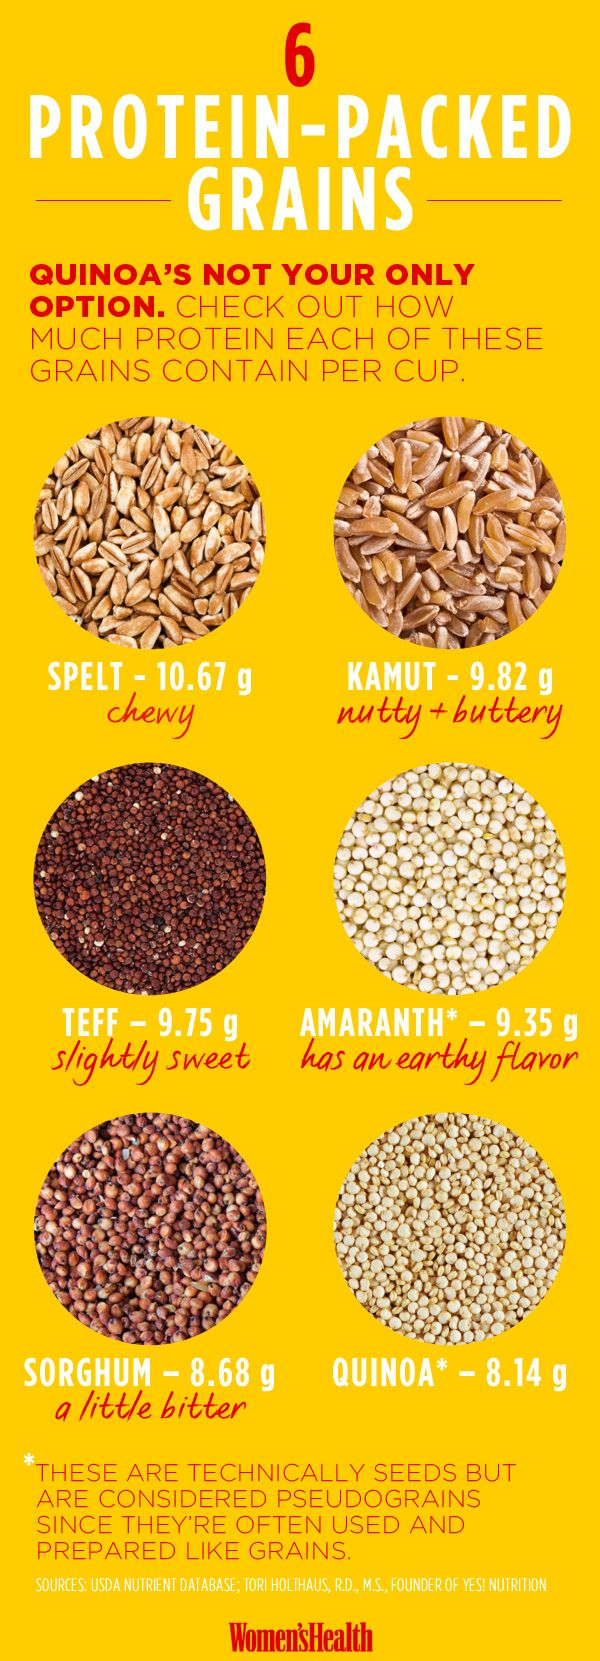 5 Healthy Grains With More Protein Than Quinoa